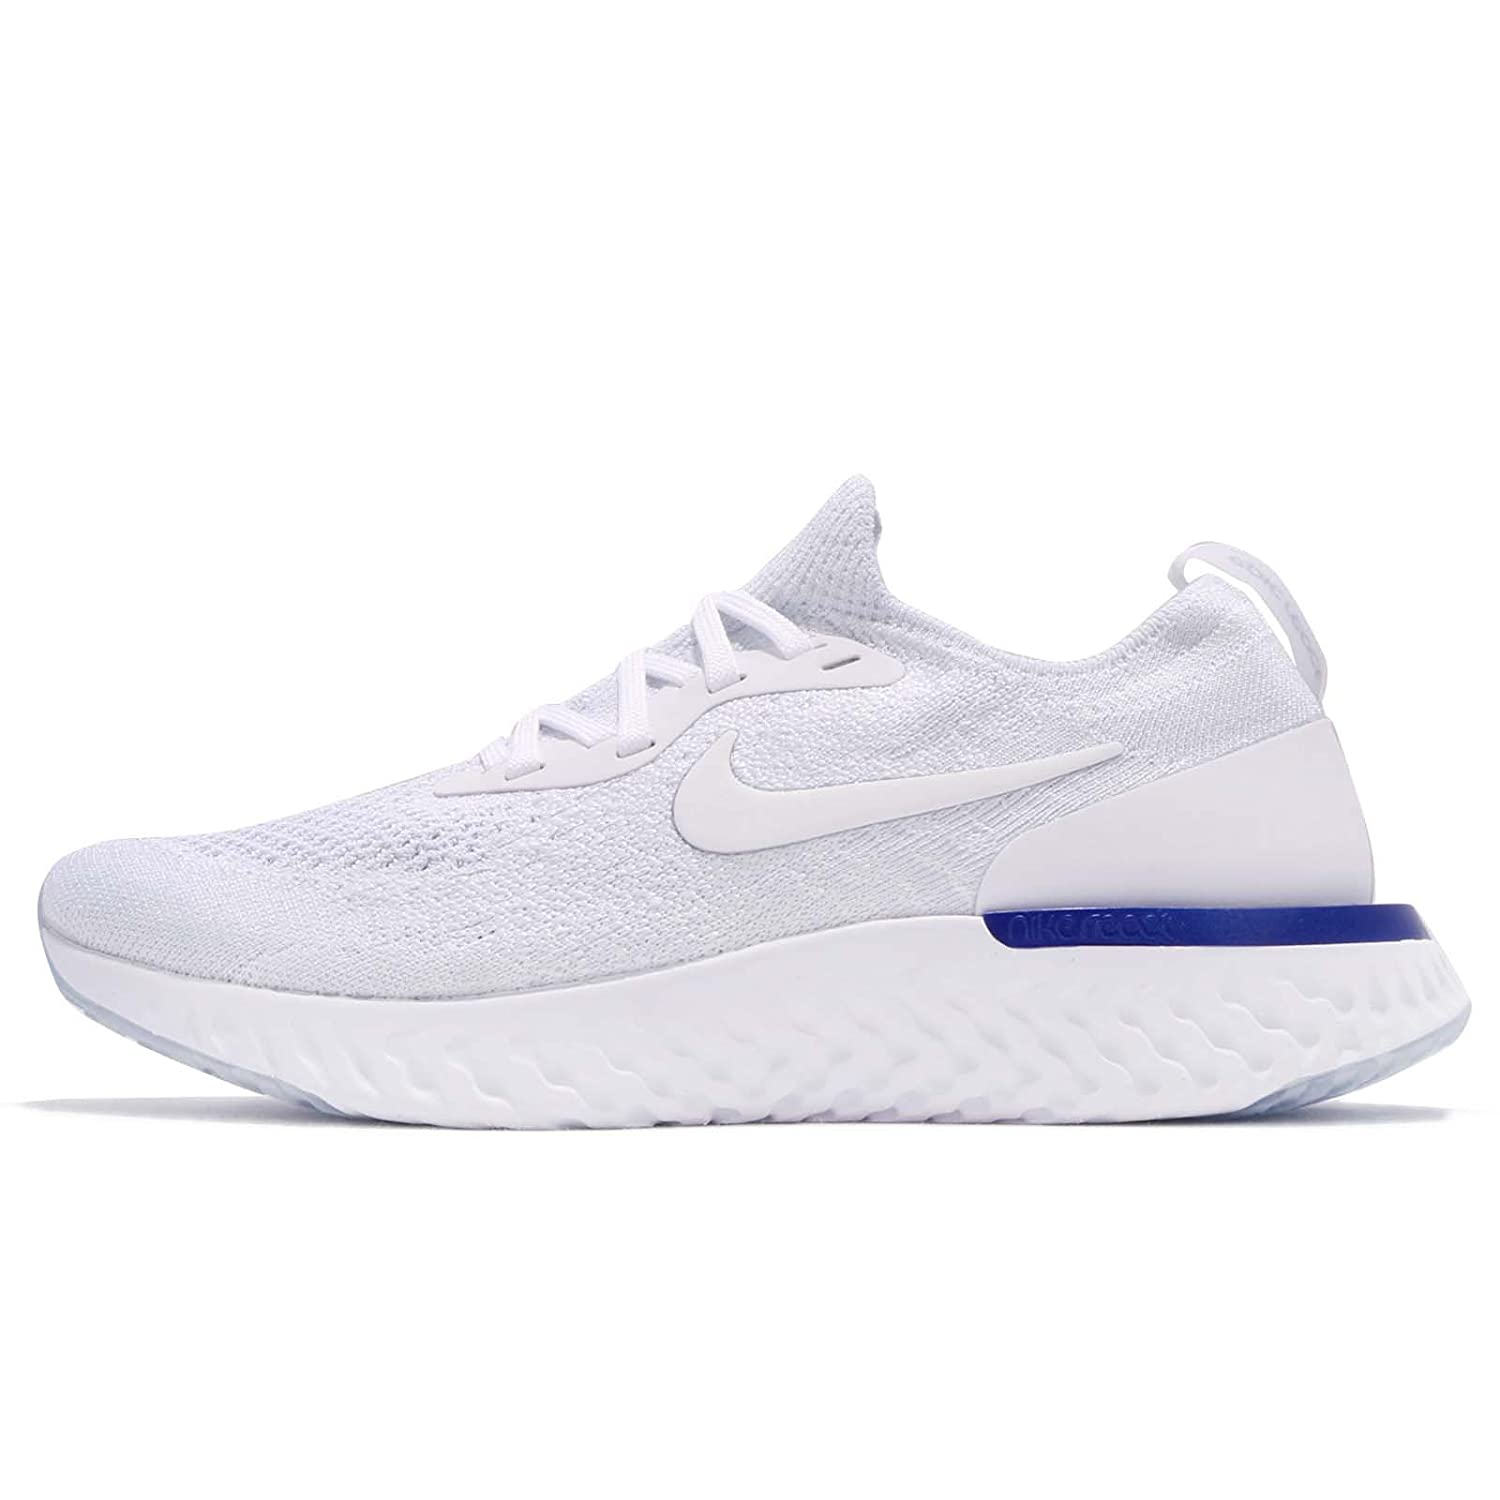 NIKE Women's Epic React Flyknit Running Shoes B079QKDDMS 6.5 US|WHITE/RACER BLUE